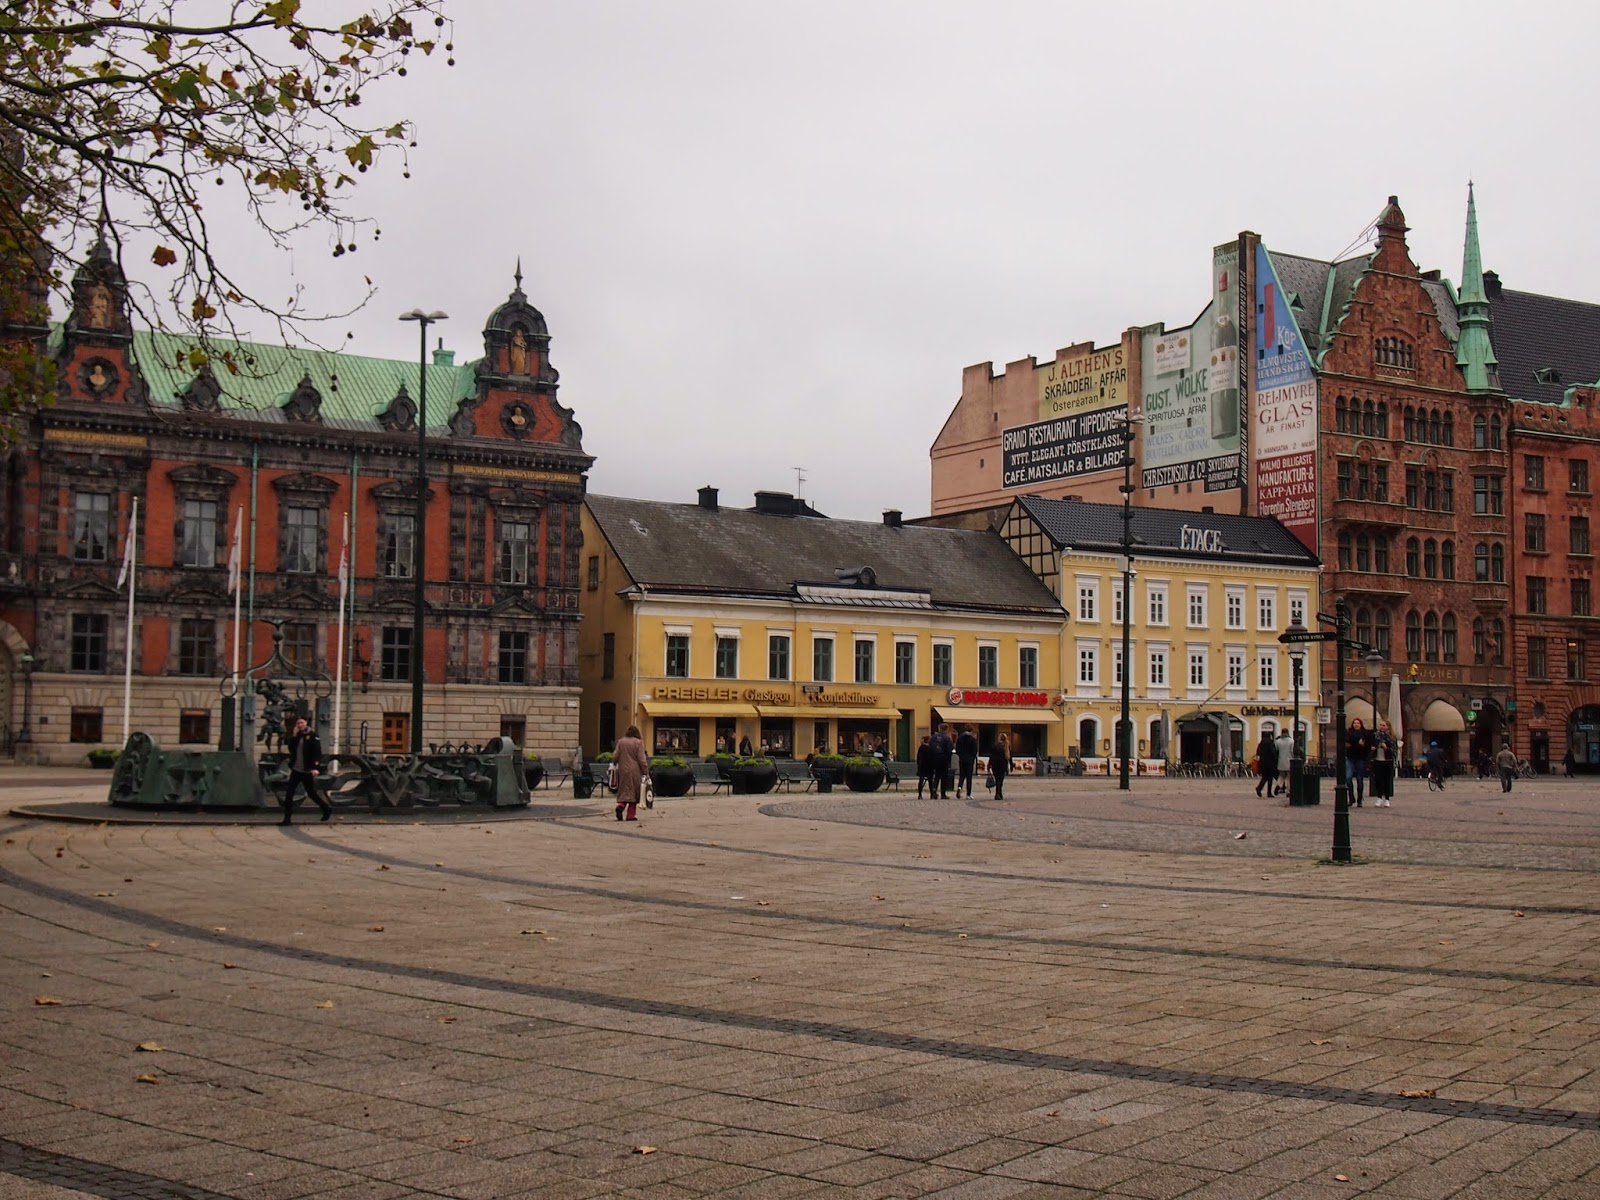 Stortorget in Malmo